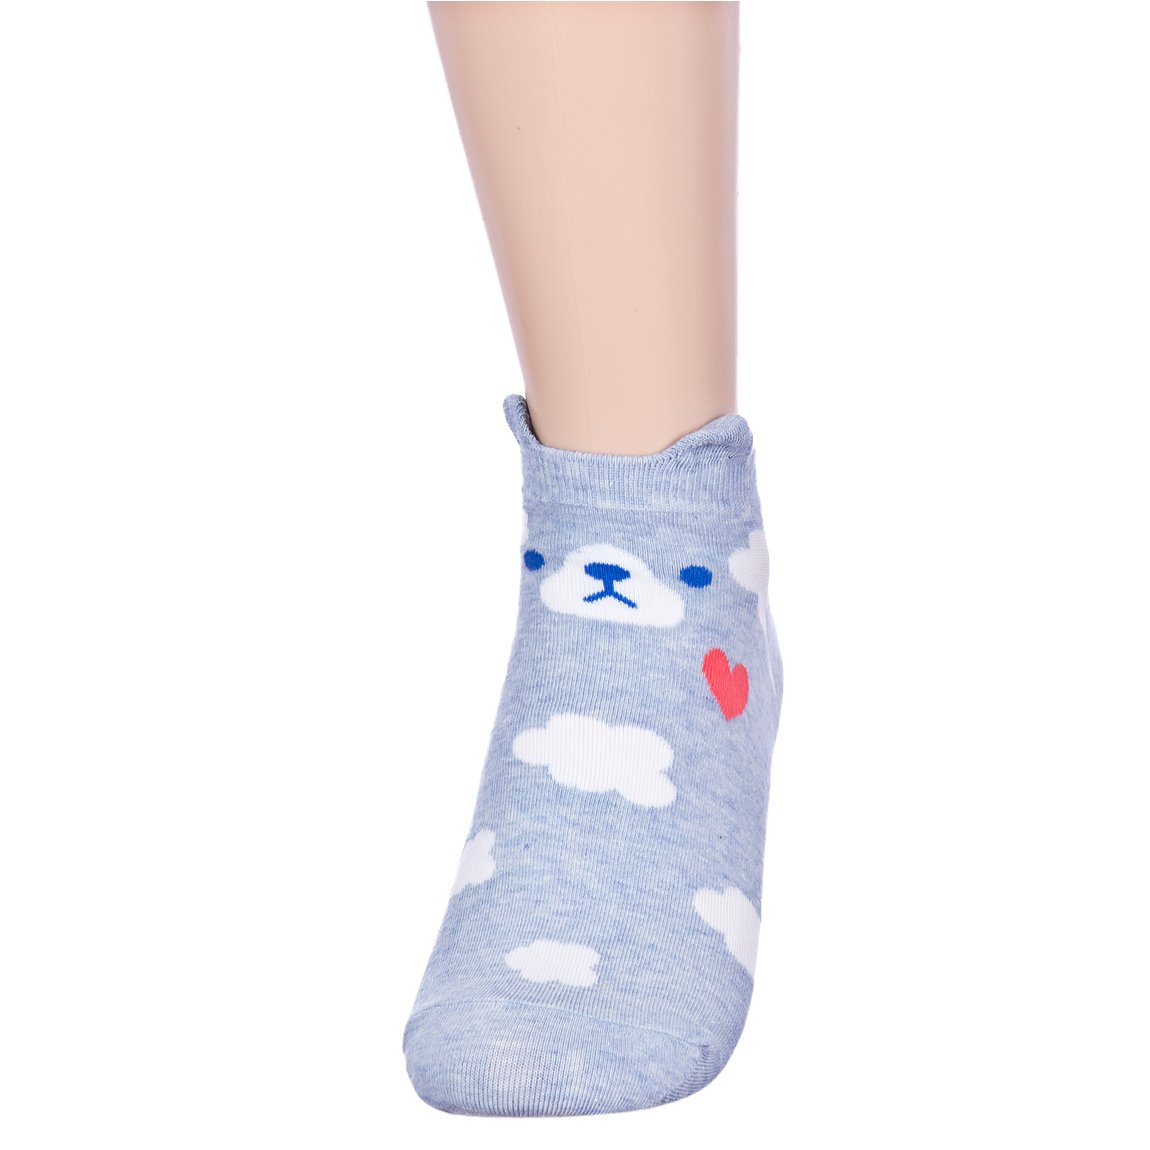 Fall in Love Animal Charater Casual Sneakers Socks (Onesize, 5 Pairs) by Dani's Choice (Image #6)